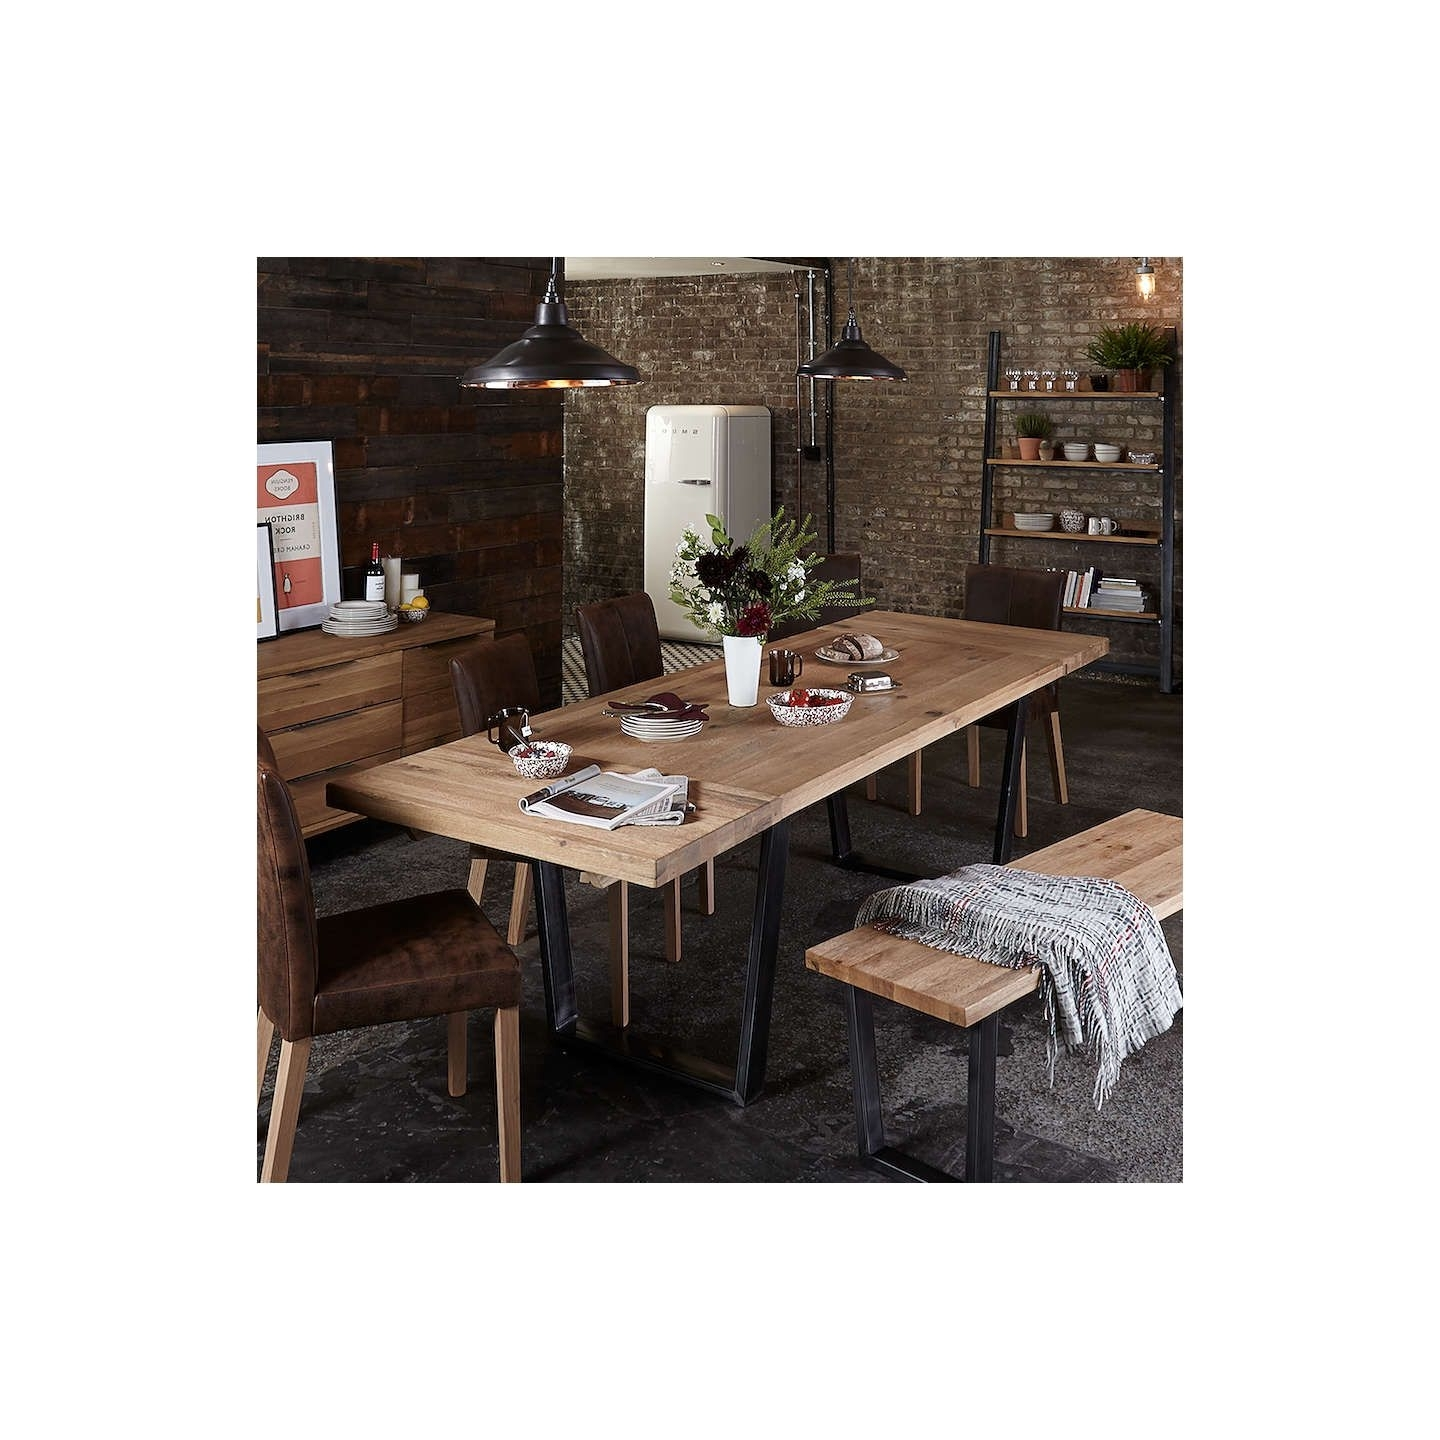 John Lewis & Partners Calia 8-12 Seater Extending Dining Table, Oak throughout Best and Newest Extendable Dining Tables With 8 Seats